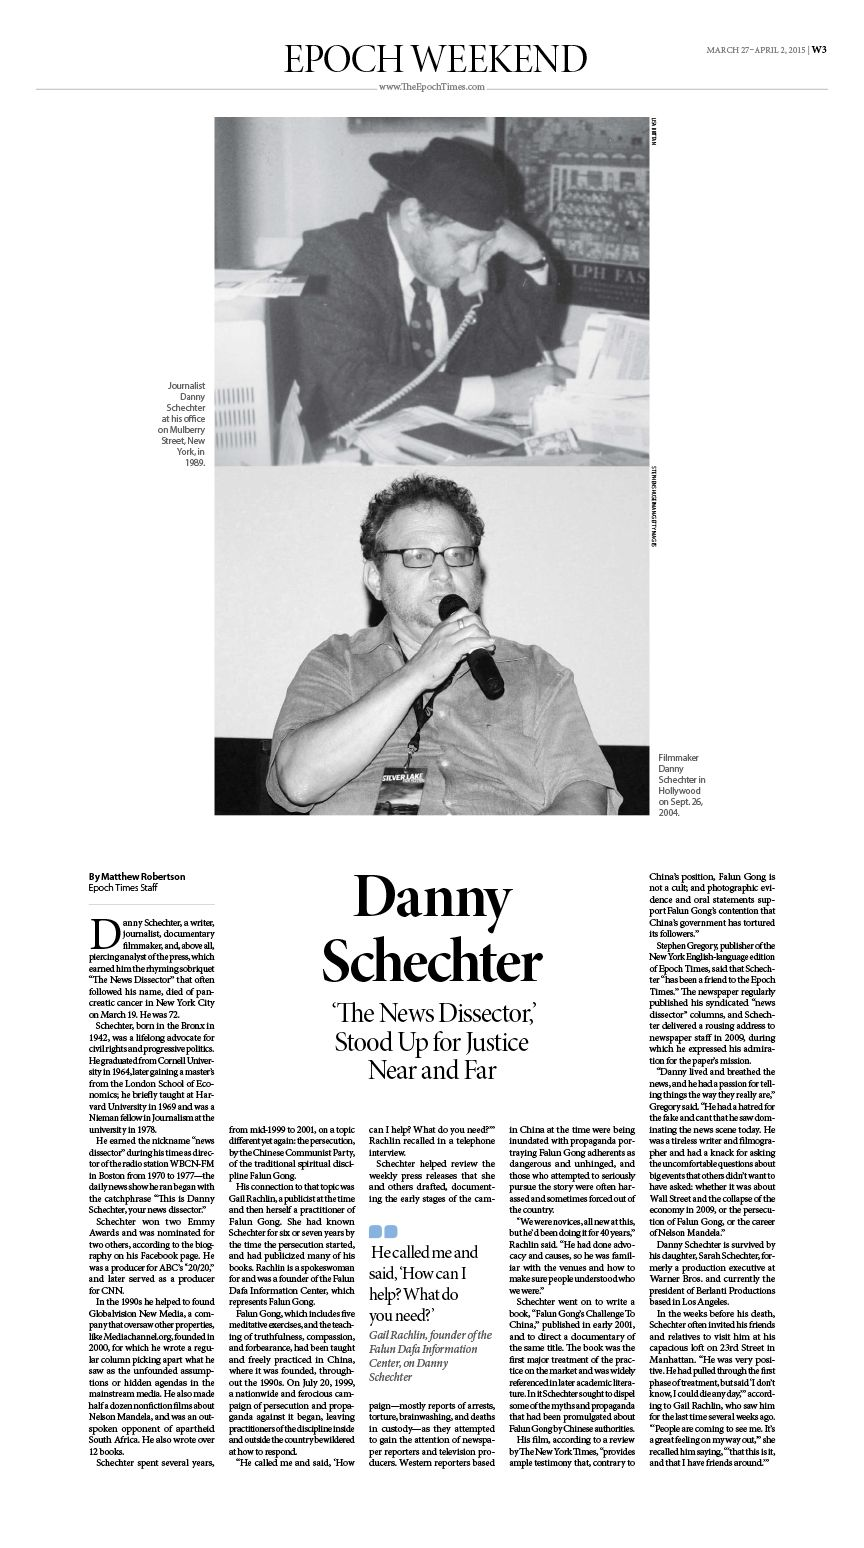 Danny Schechter, 'The News Dissector,' Stood Up for Justice Near and Far|Epoch Times #Story #editorialdesign